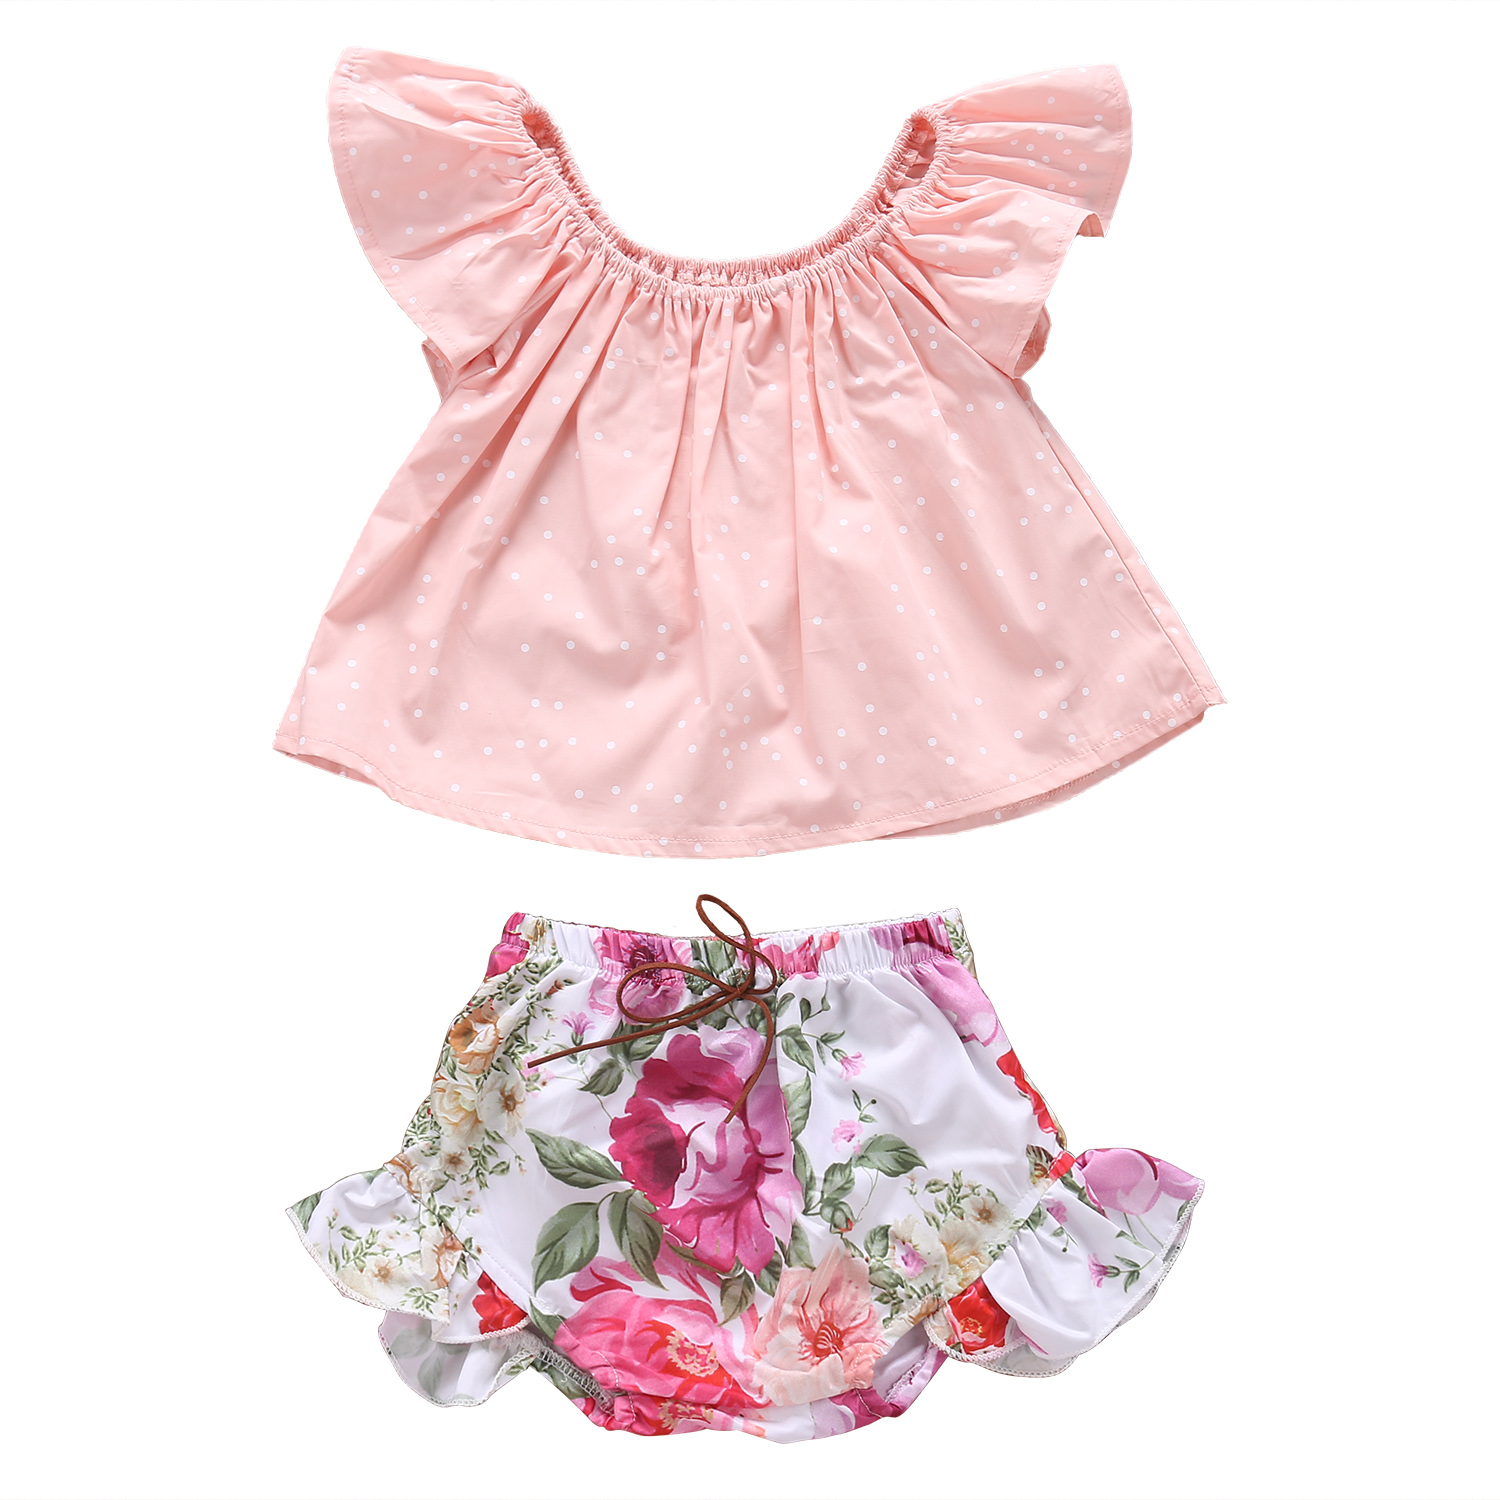 2PCS Toddler Kids Baby Girls Clothes T-shirt Vest Tops Shorts Flower Cute Outfits Clothing Set Baby Girl 2017 cute kids girl clothing set off shoulder lace white t shirt tops denim pant jeans 2pcs children clothes 2 7y